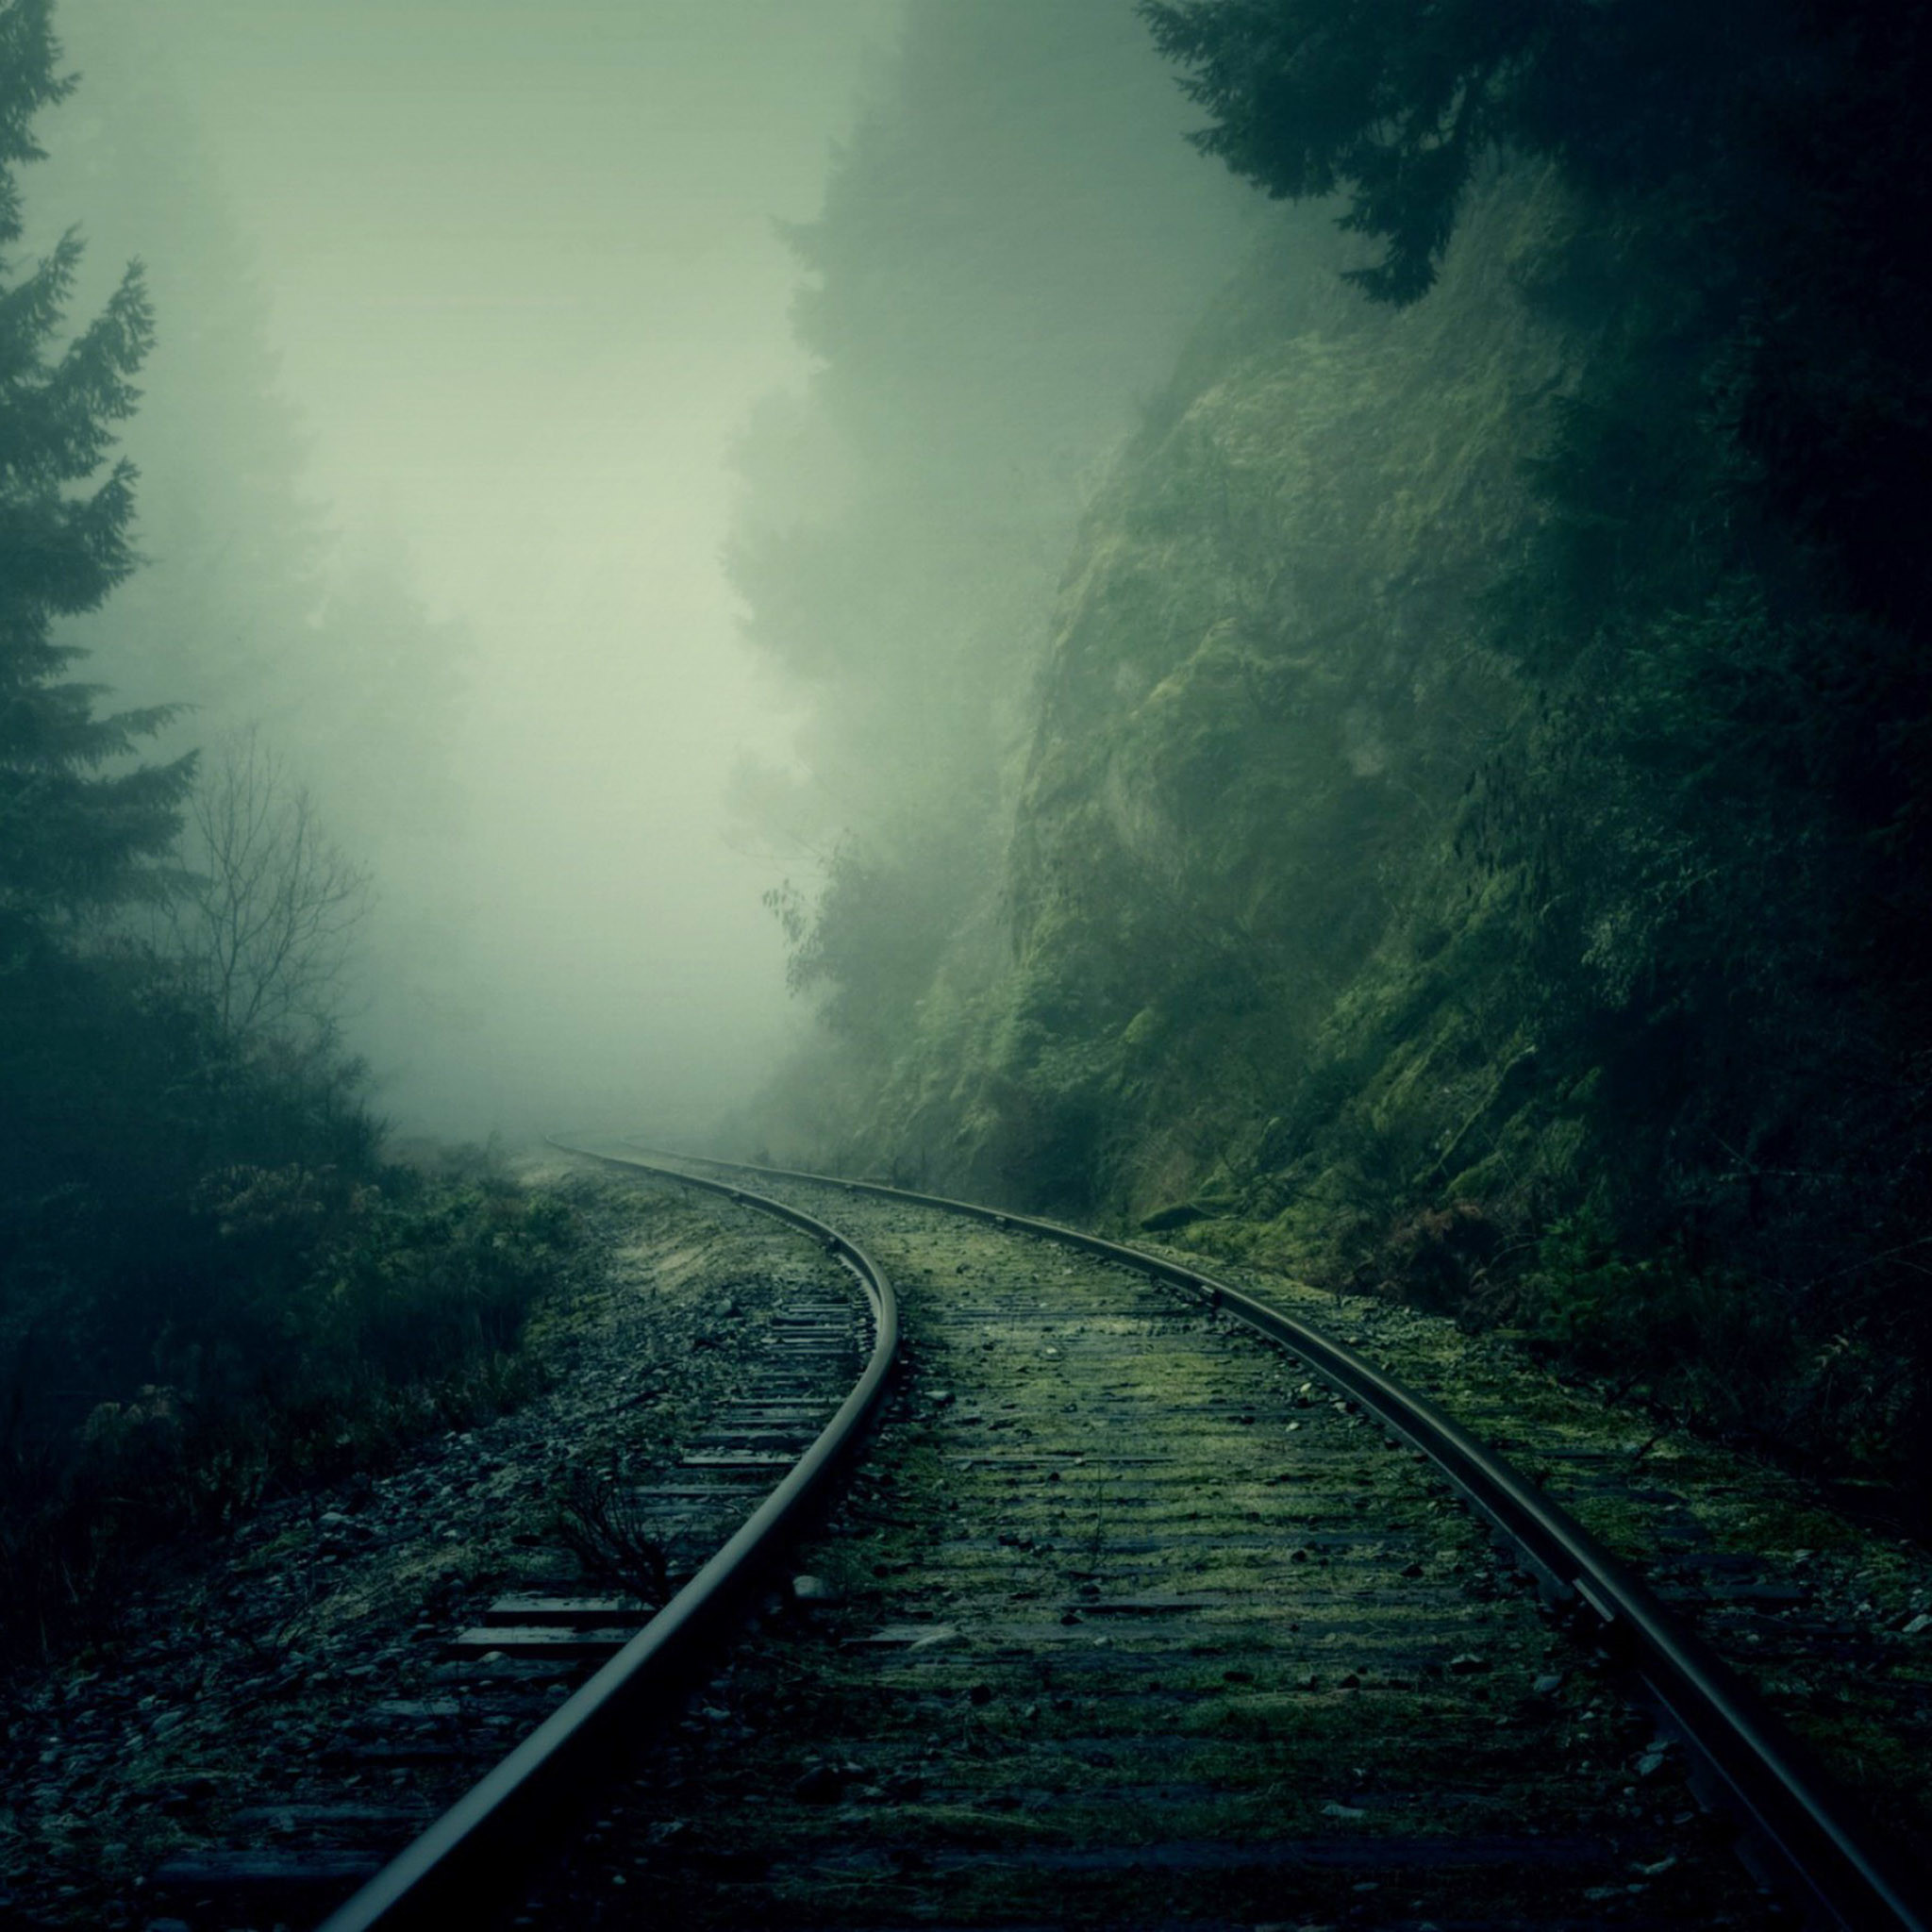 Train Track Wallpaper (74+ Images